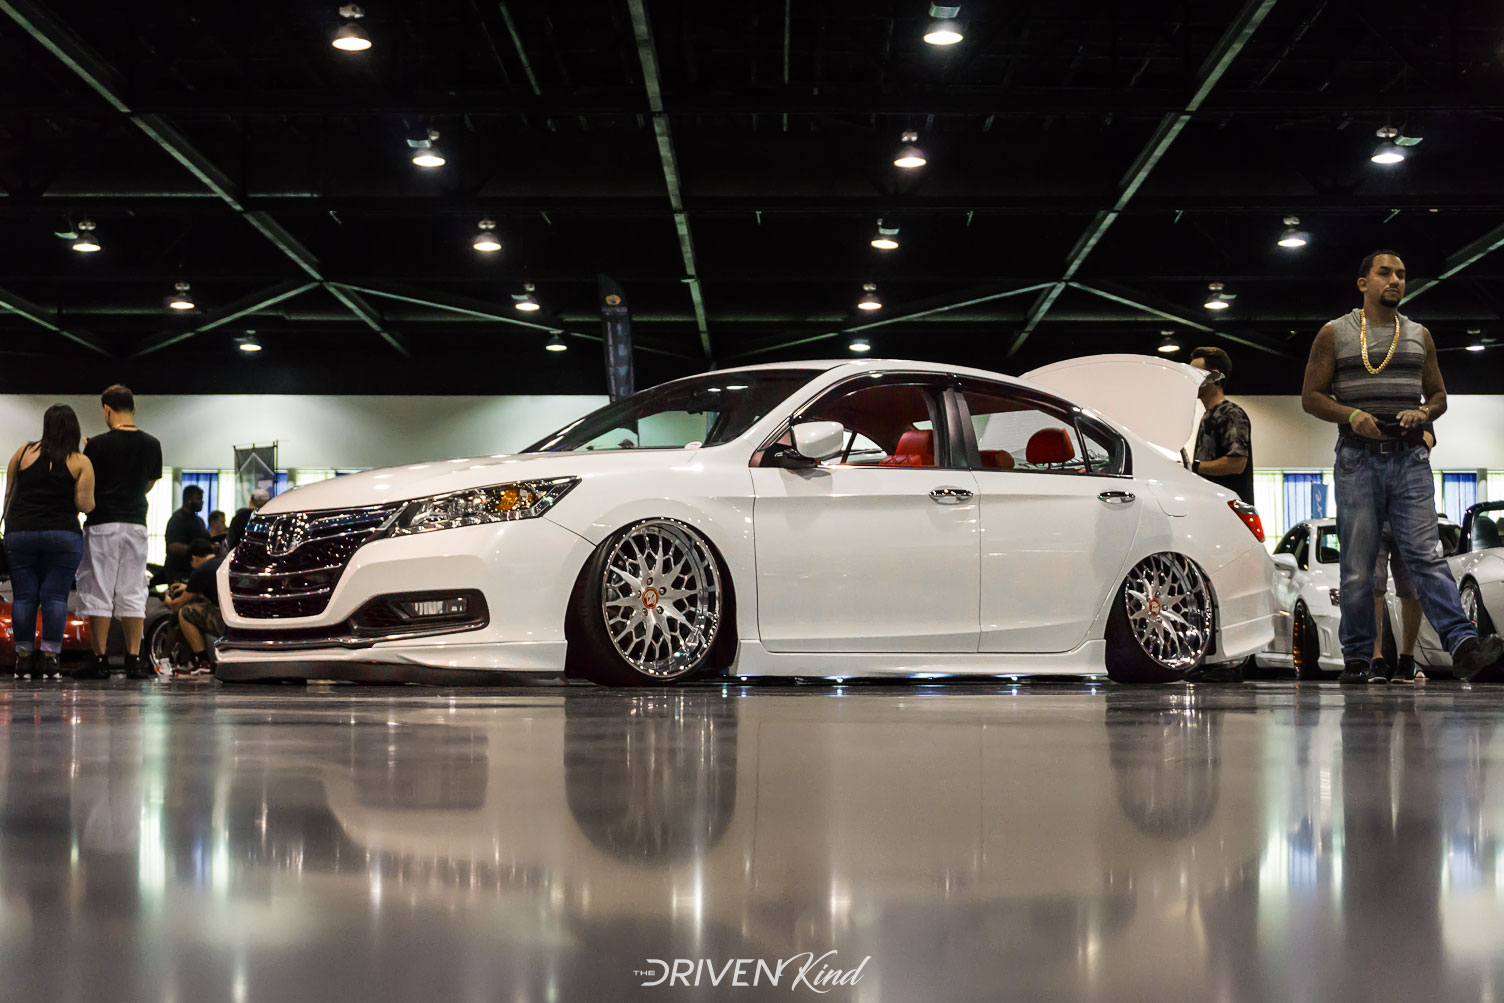 Honda Accord Mugen Tuner Evolution Car Show Coverage Daytona Beach by The Driven Kind